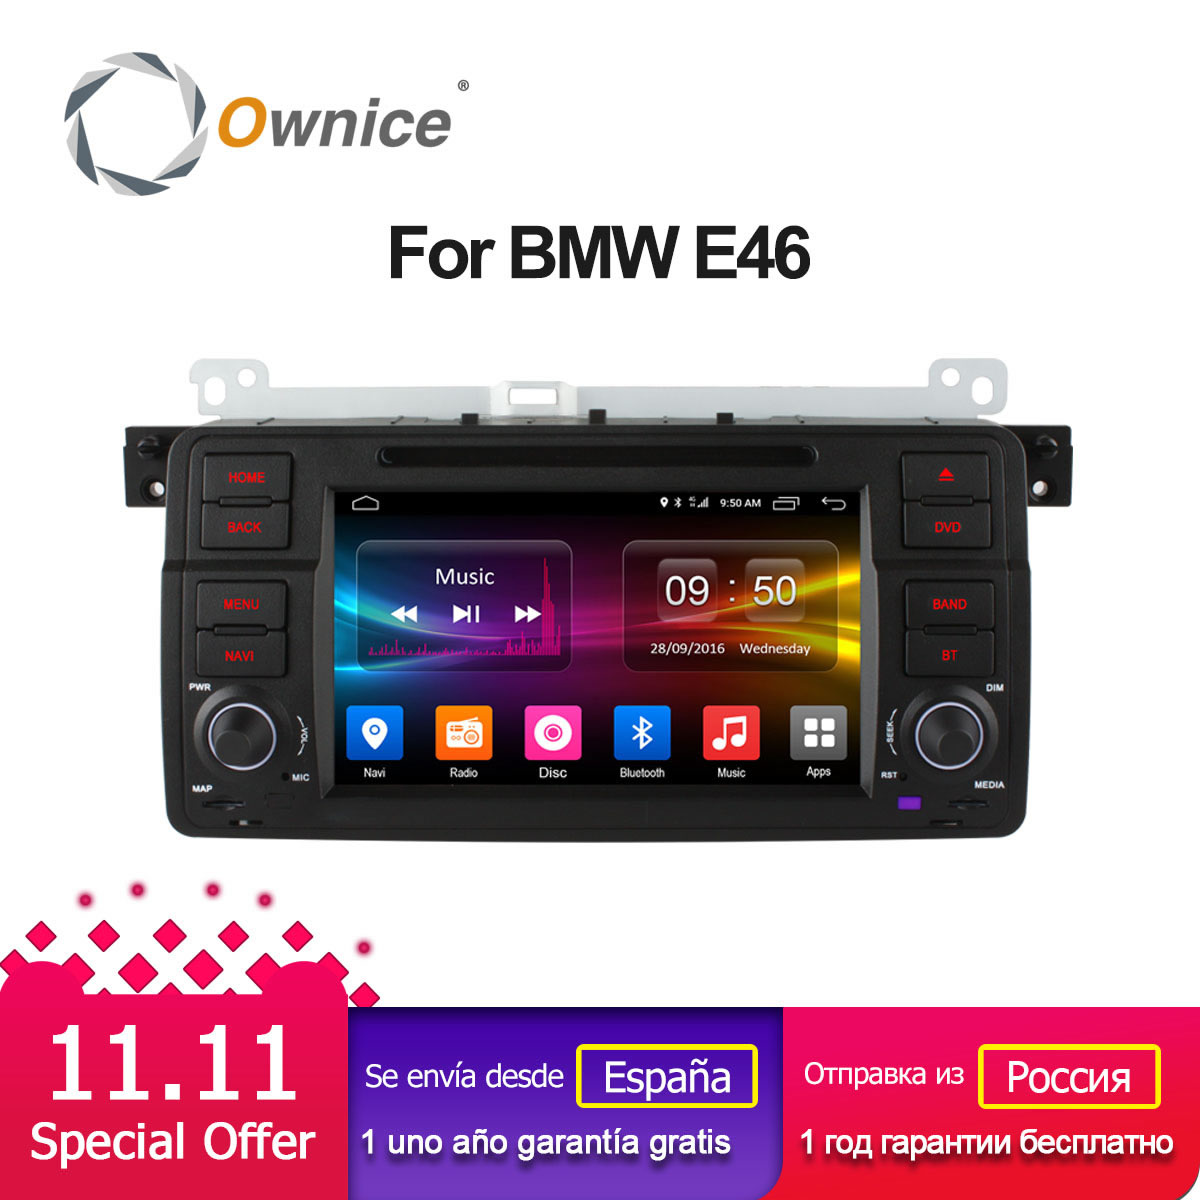 Ownice C500 Android 6.0 Octa 8 Core for bmw E46 M3 car dvd gps navi wifi 4G BT Radio RDS 2GB RAM 32GB ROM support DAB+ TPMS ownice c500 octa core android 6 0 car dvd gps for mazda 6 ruiyi ultra 2008 2009 2010 2011 2012 wifi 4g radio 2gb ram bt 32g rom